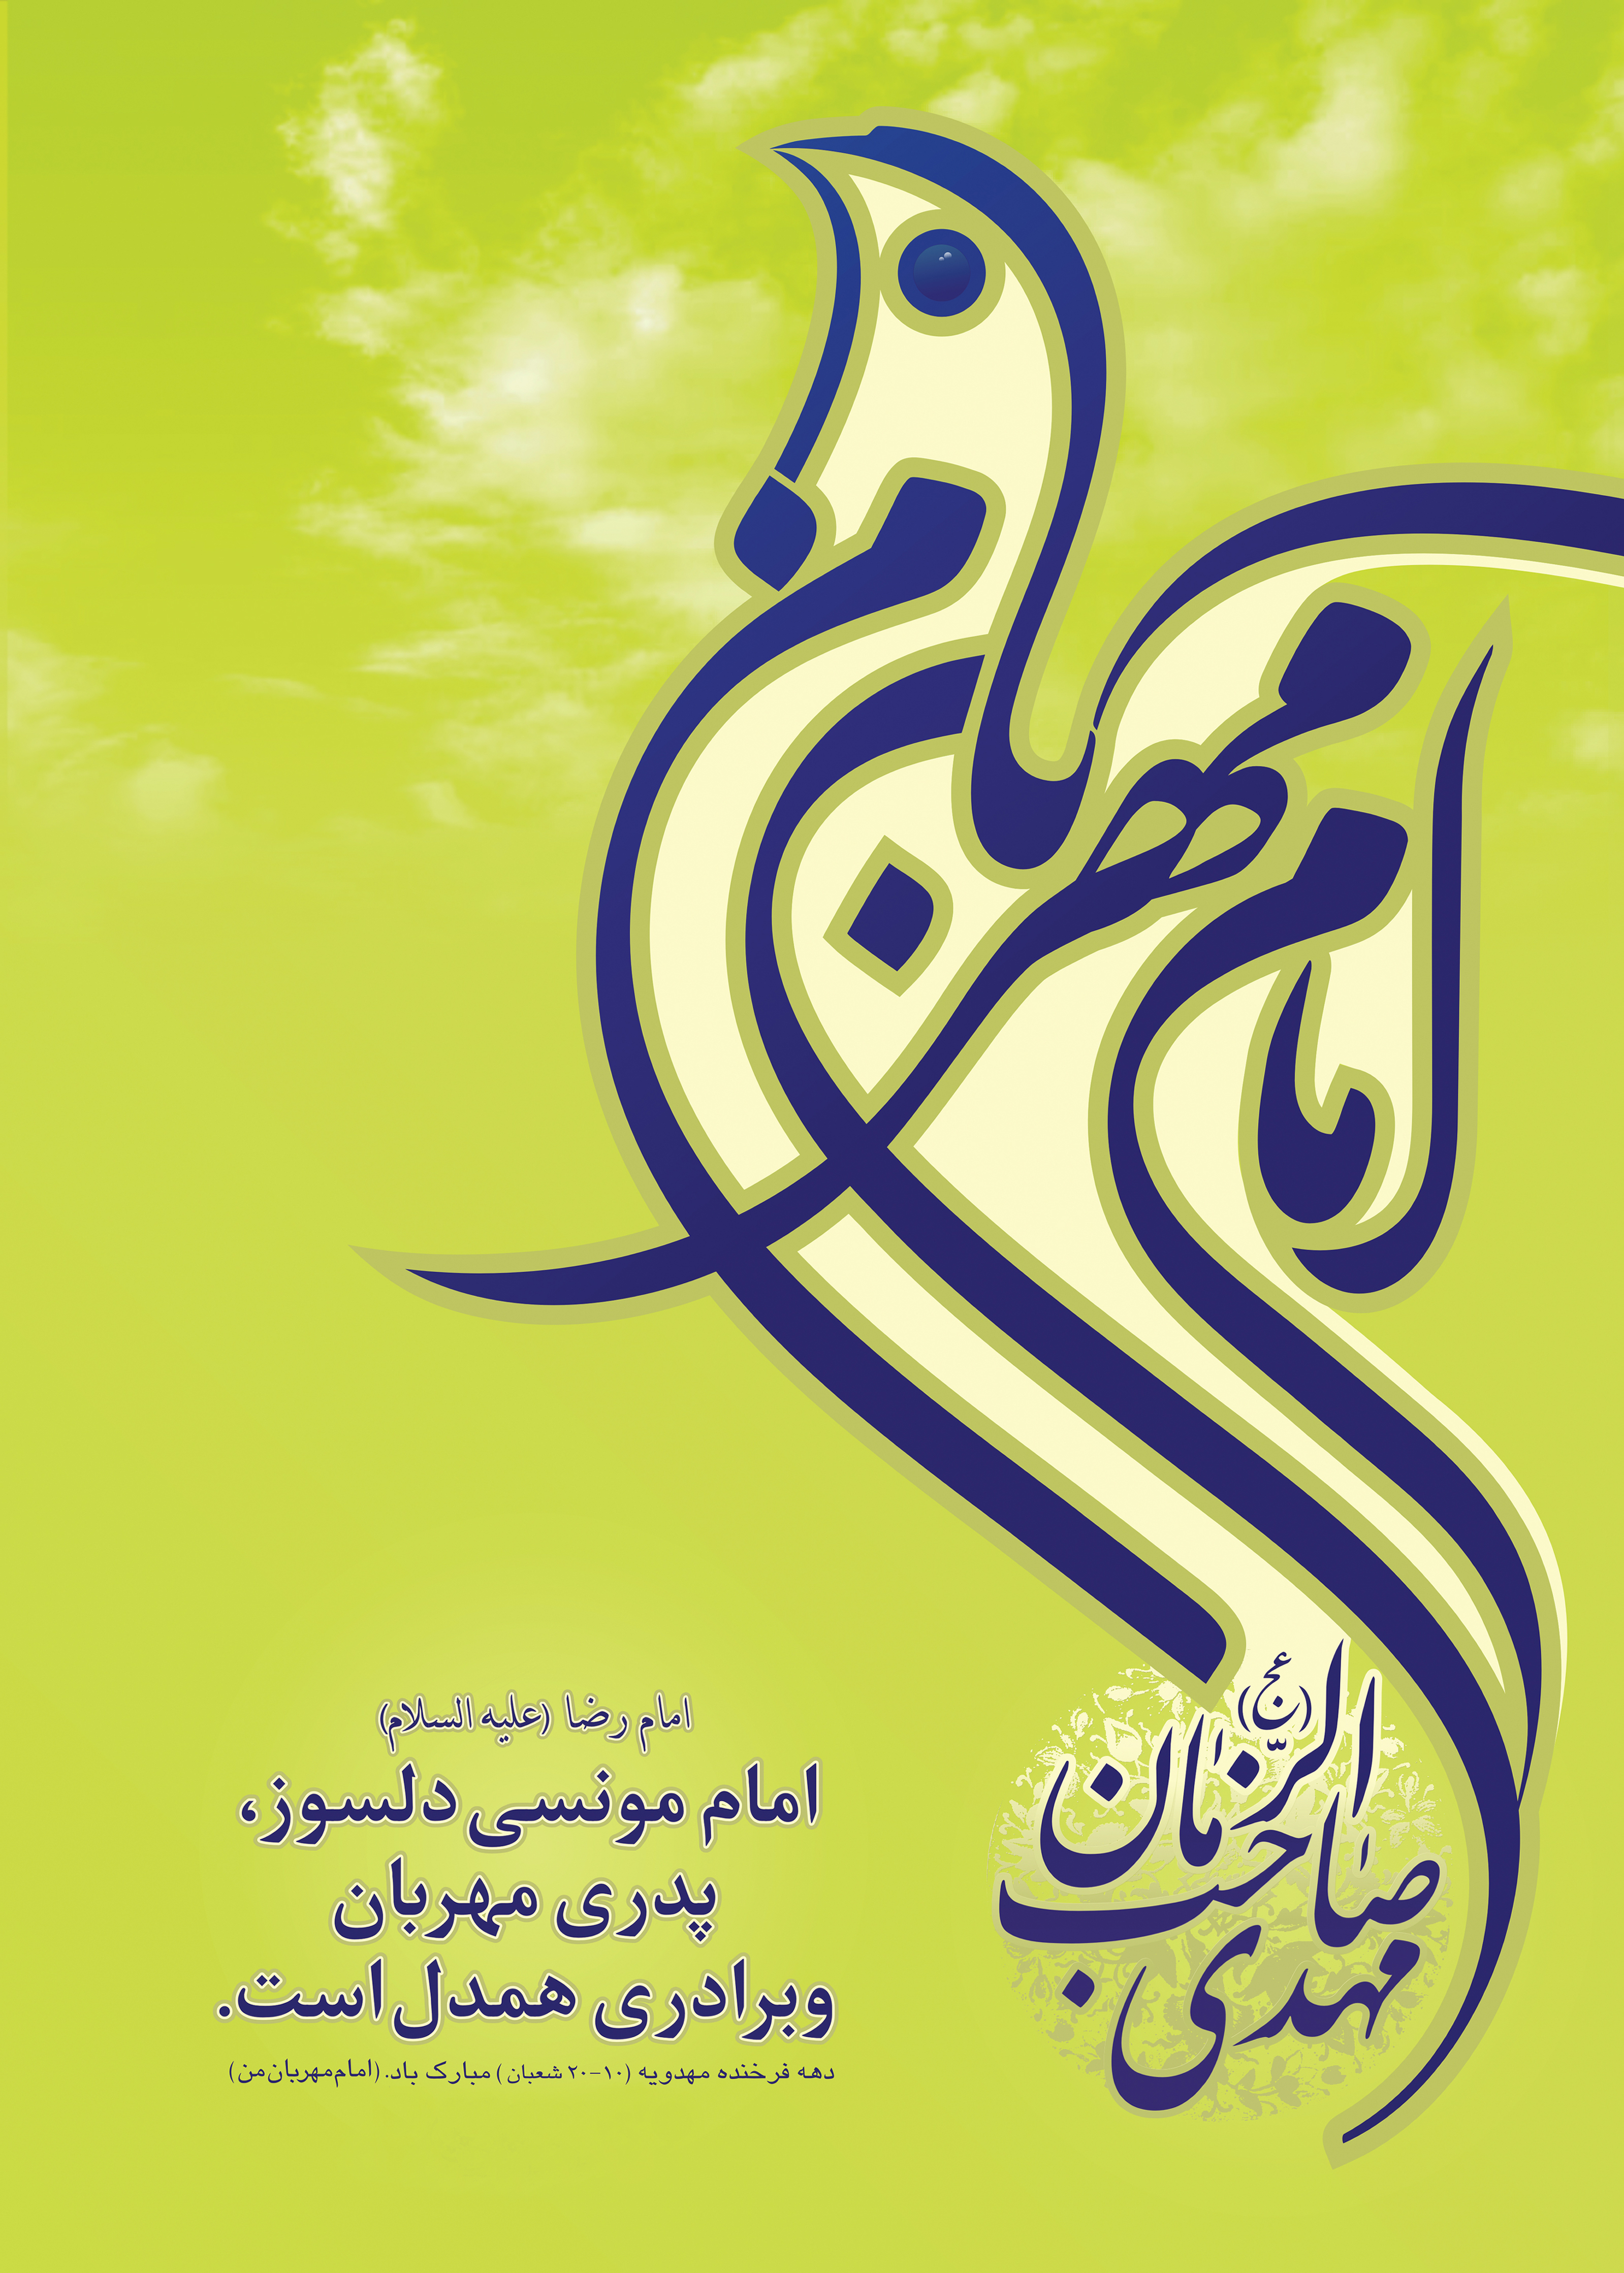 Islamic Shia Artistss Typejournalformatted1